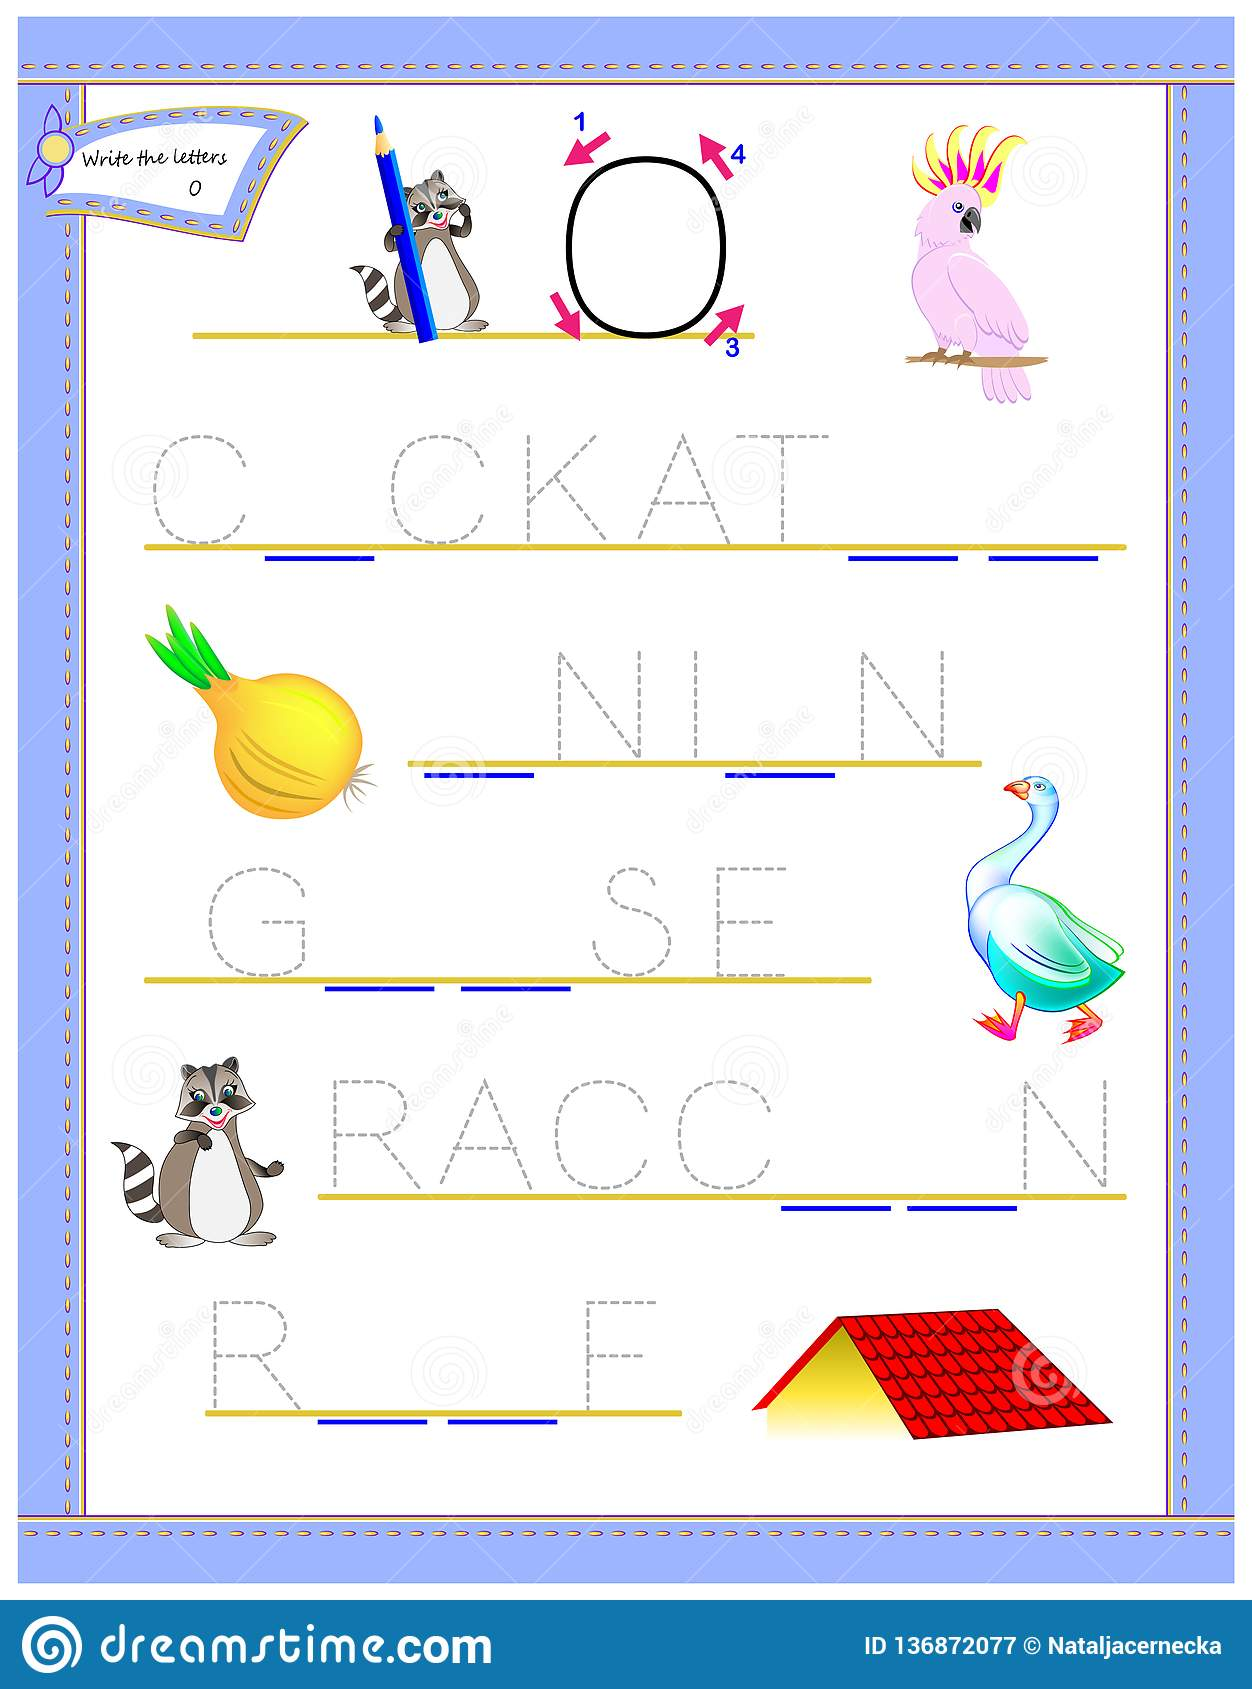 Tracing Letter O For Study English Alphabet Printable